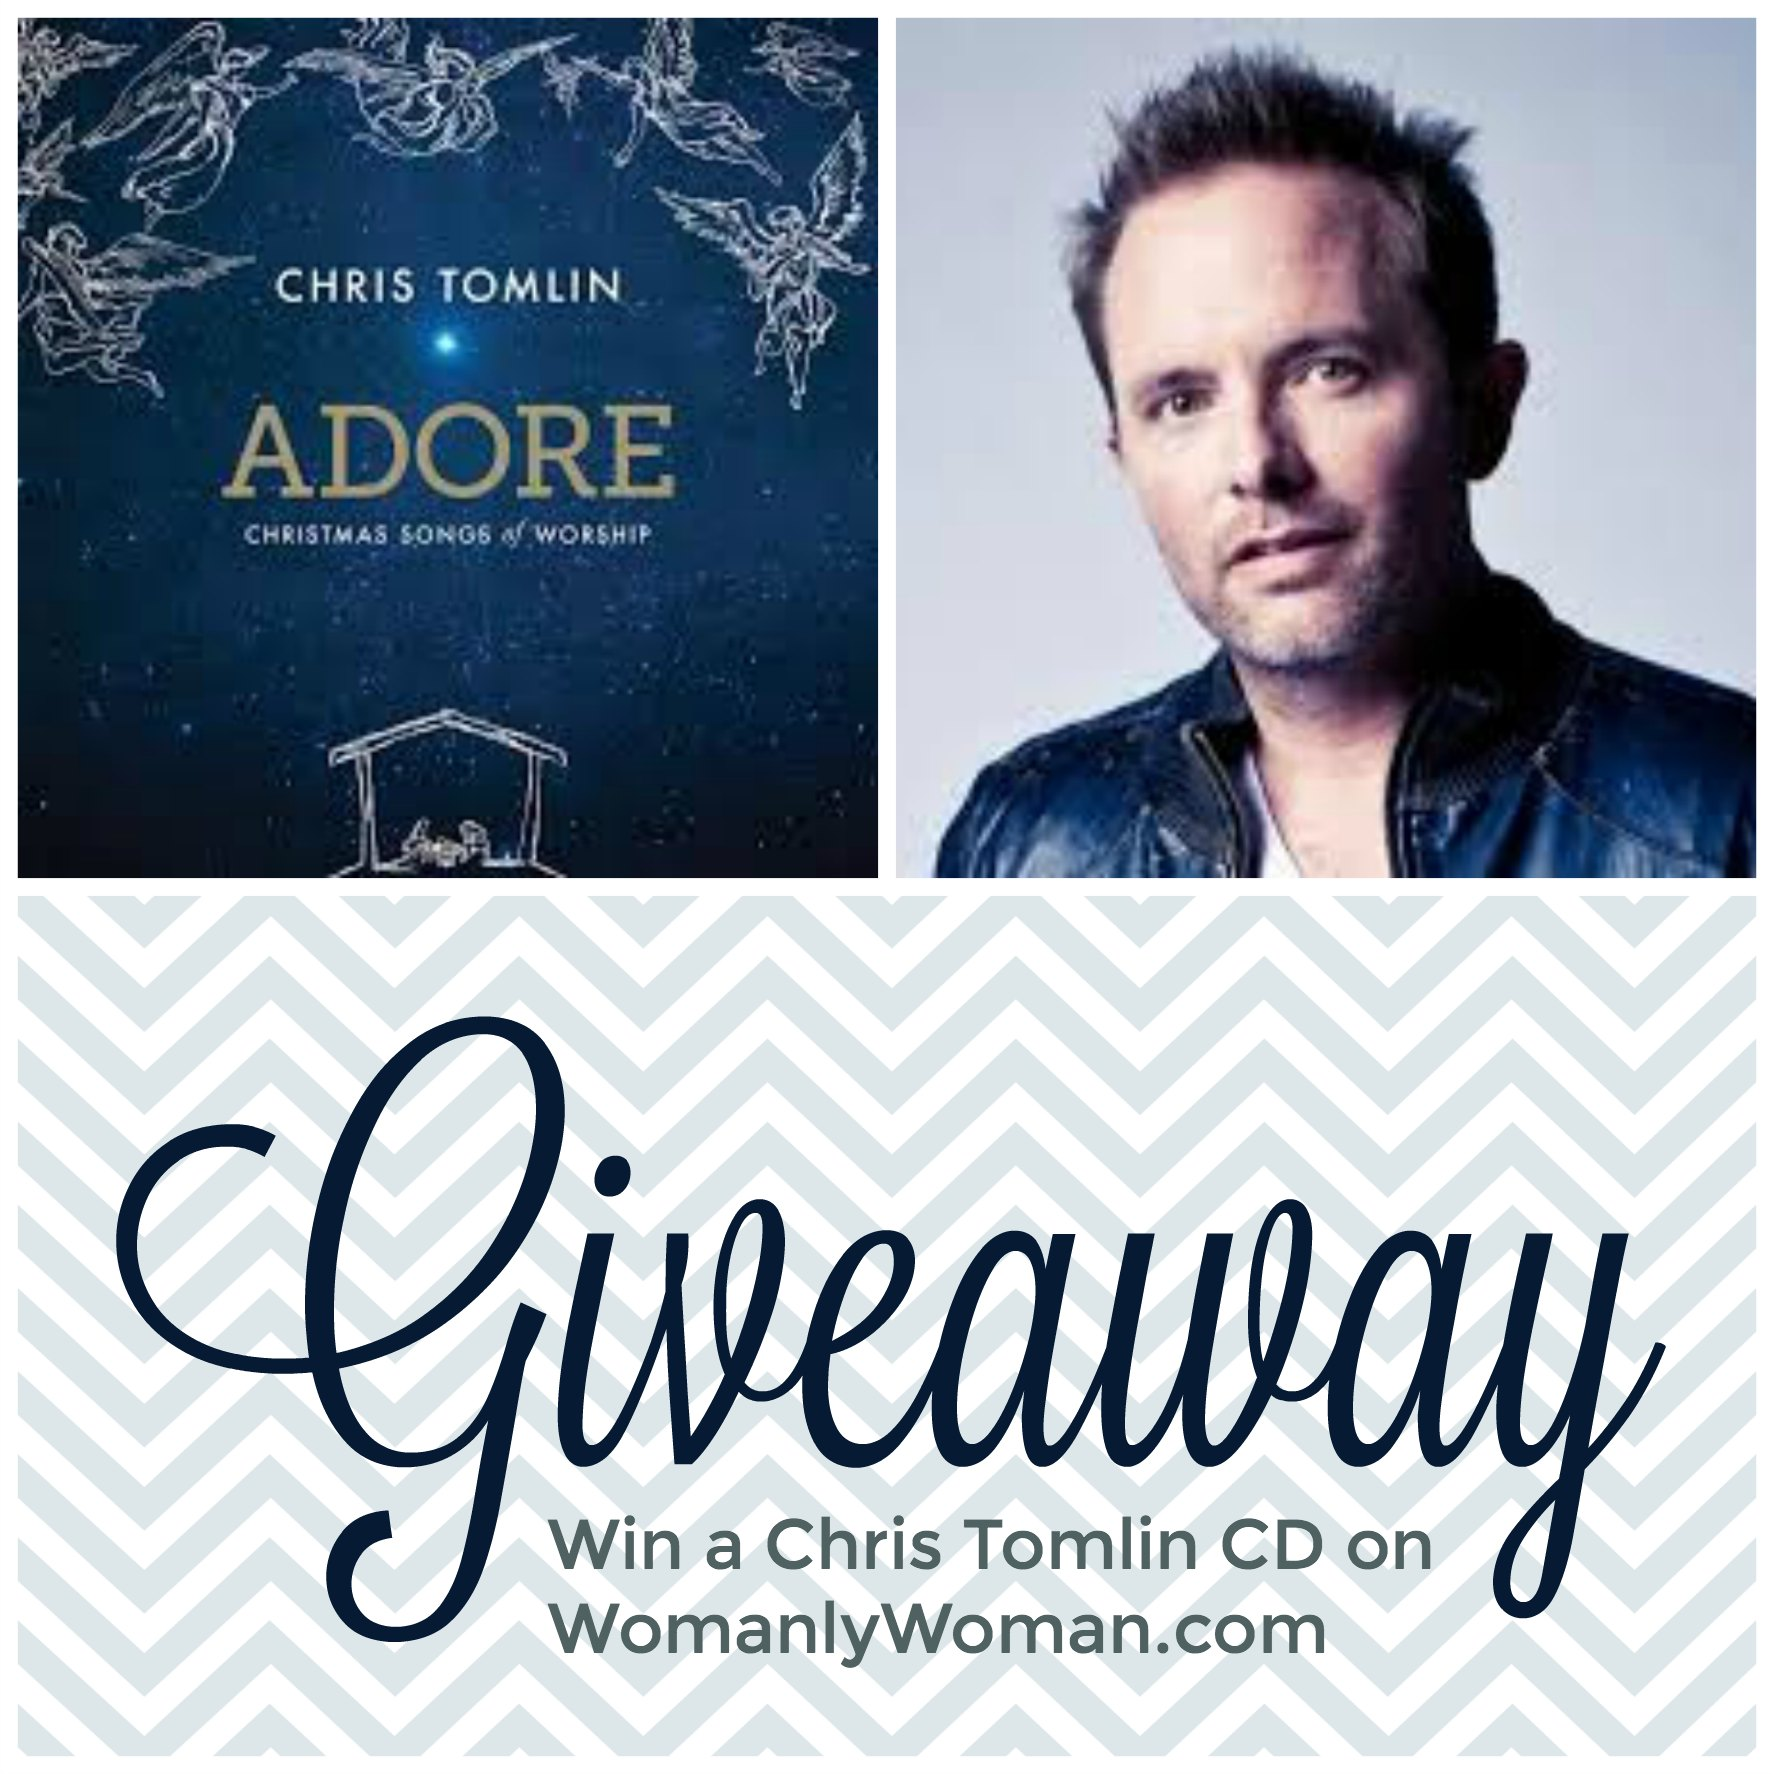 CD Giveaway: Chris Tomlin Adore: Christmas Songs of Worship #FlyBy